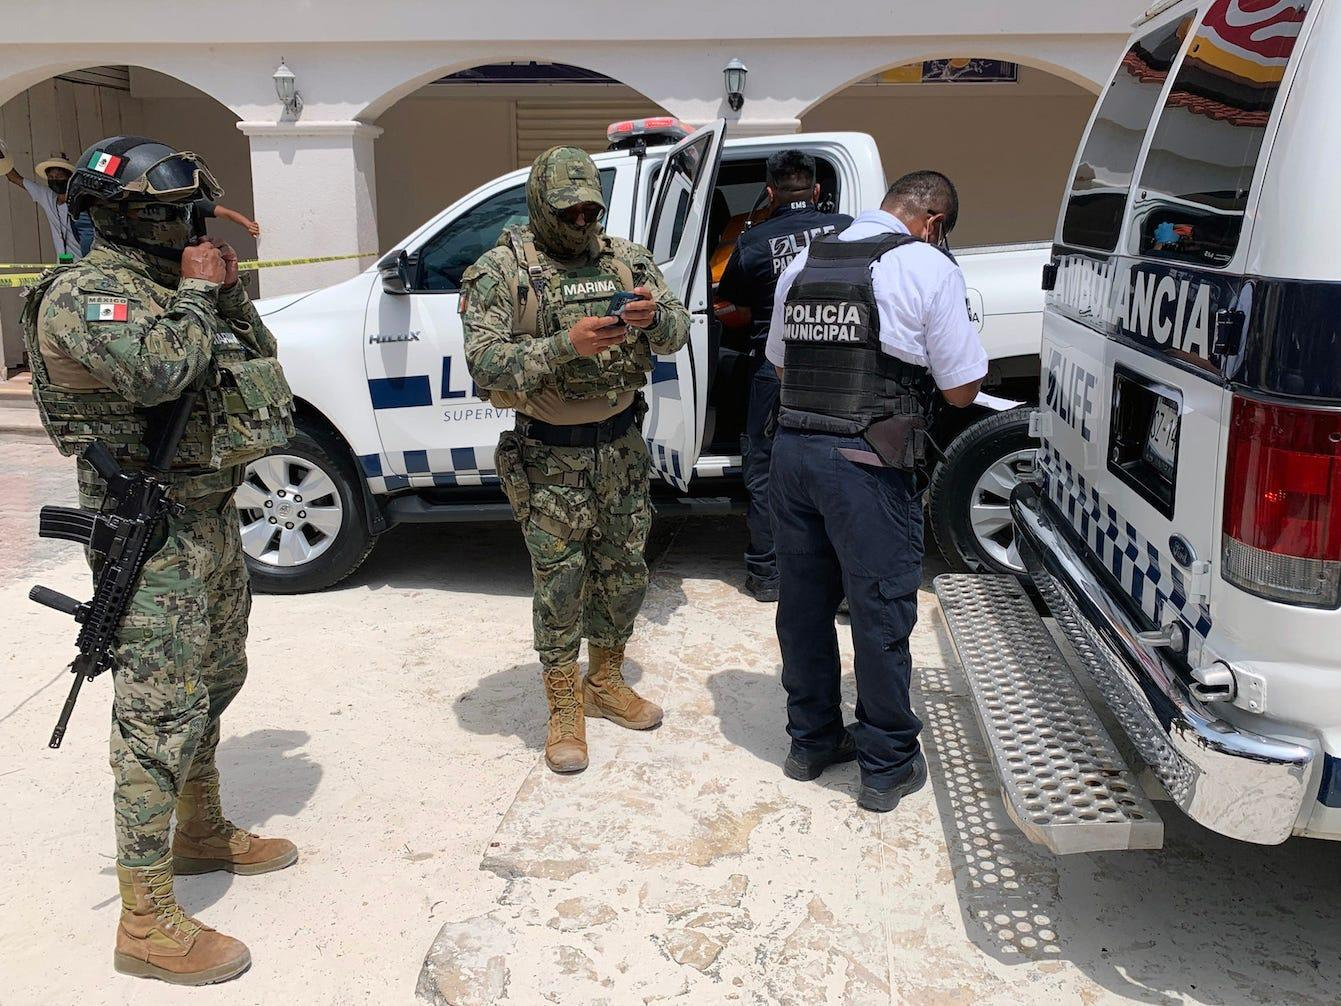 A US tourist in Cancun was wounded by a stray bullet when gunmen on jet skis reportedly killed 2 men at the beach